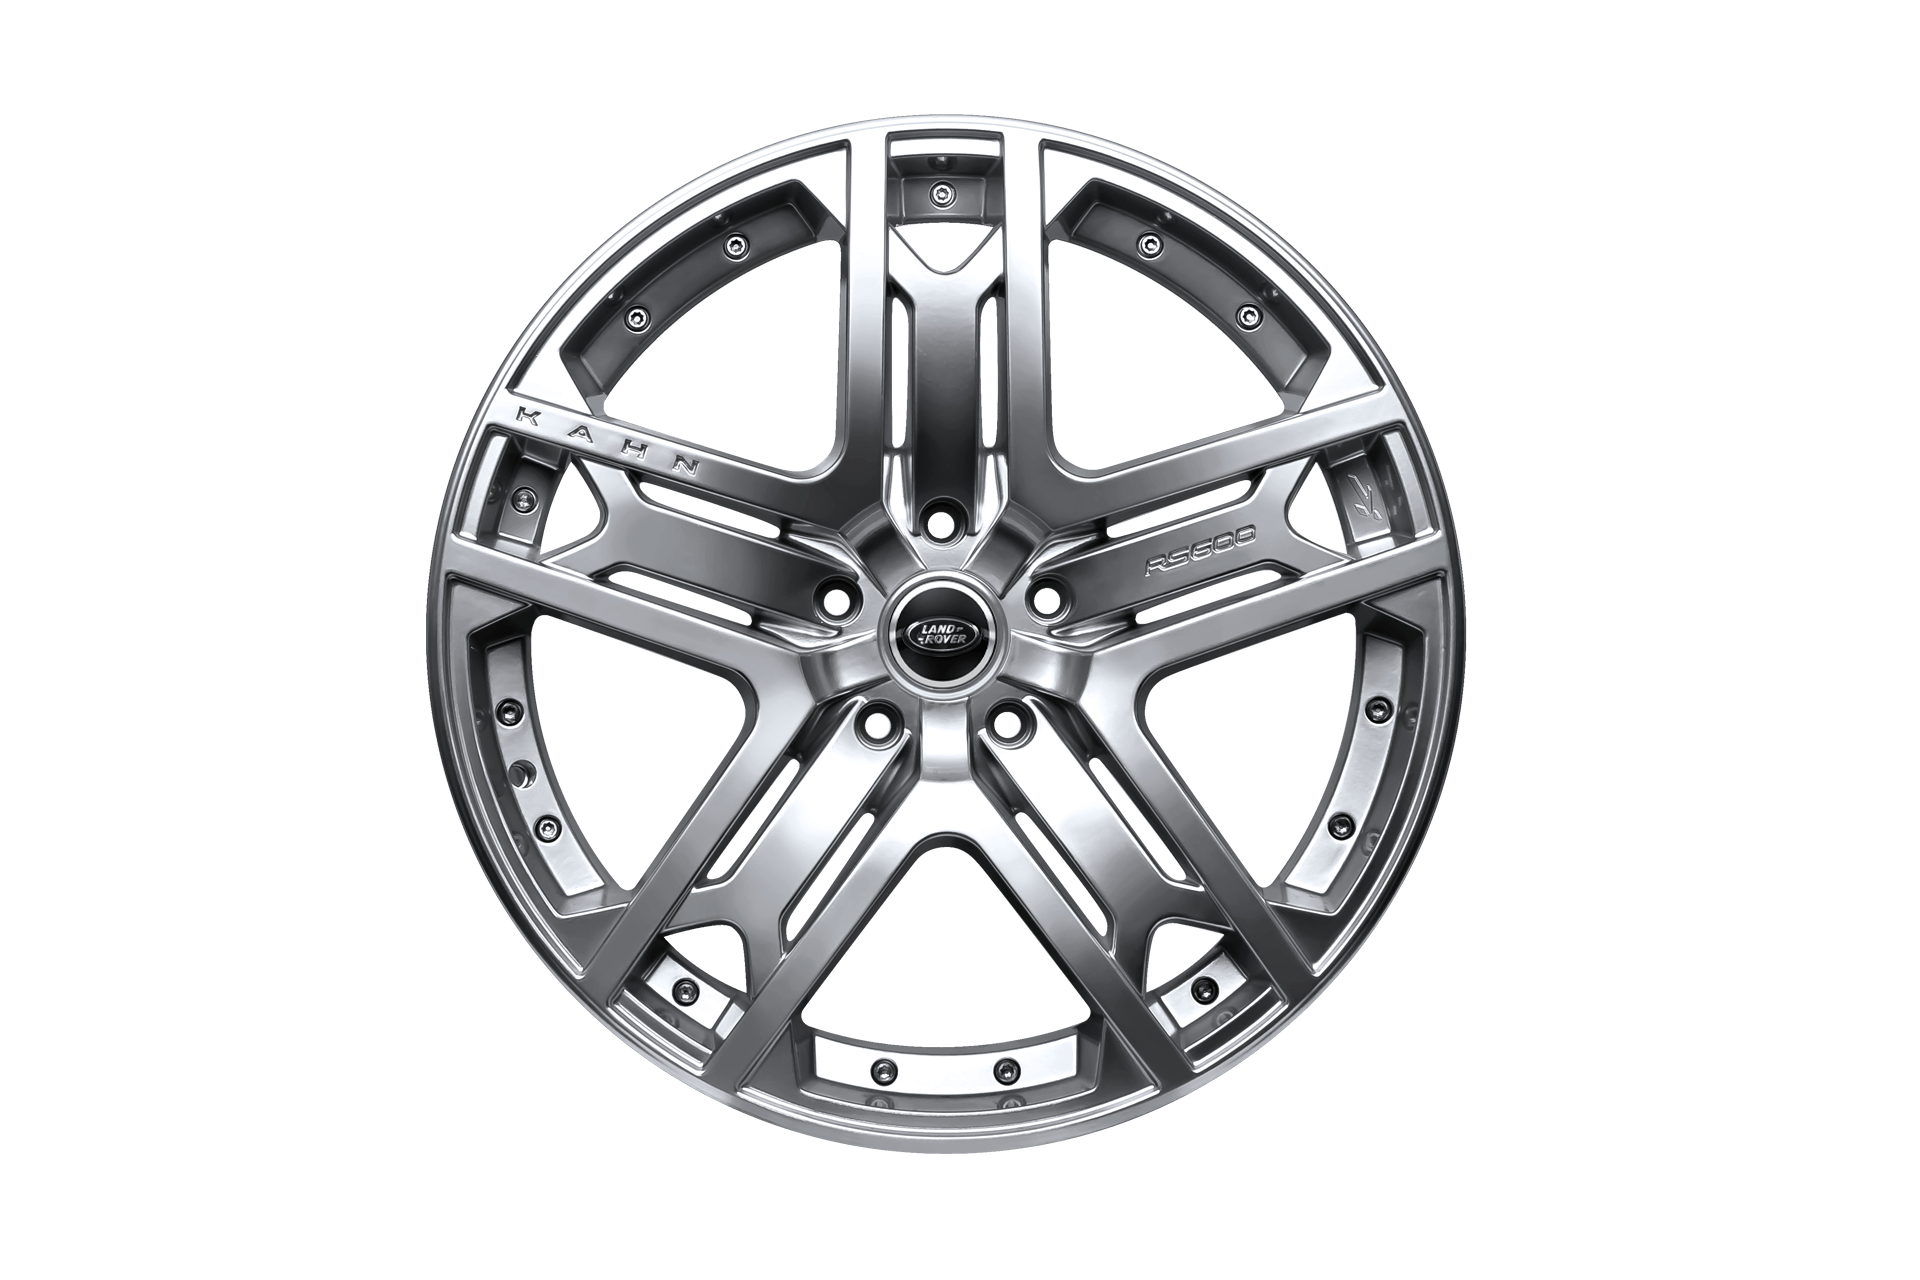 Land Rover Discovery (2017-Present) Rs600 Light Alloy Wheels by Kahn - Image 3400